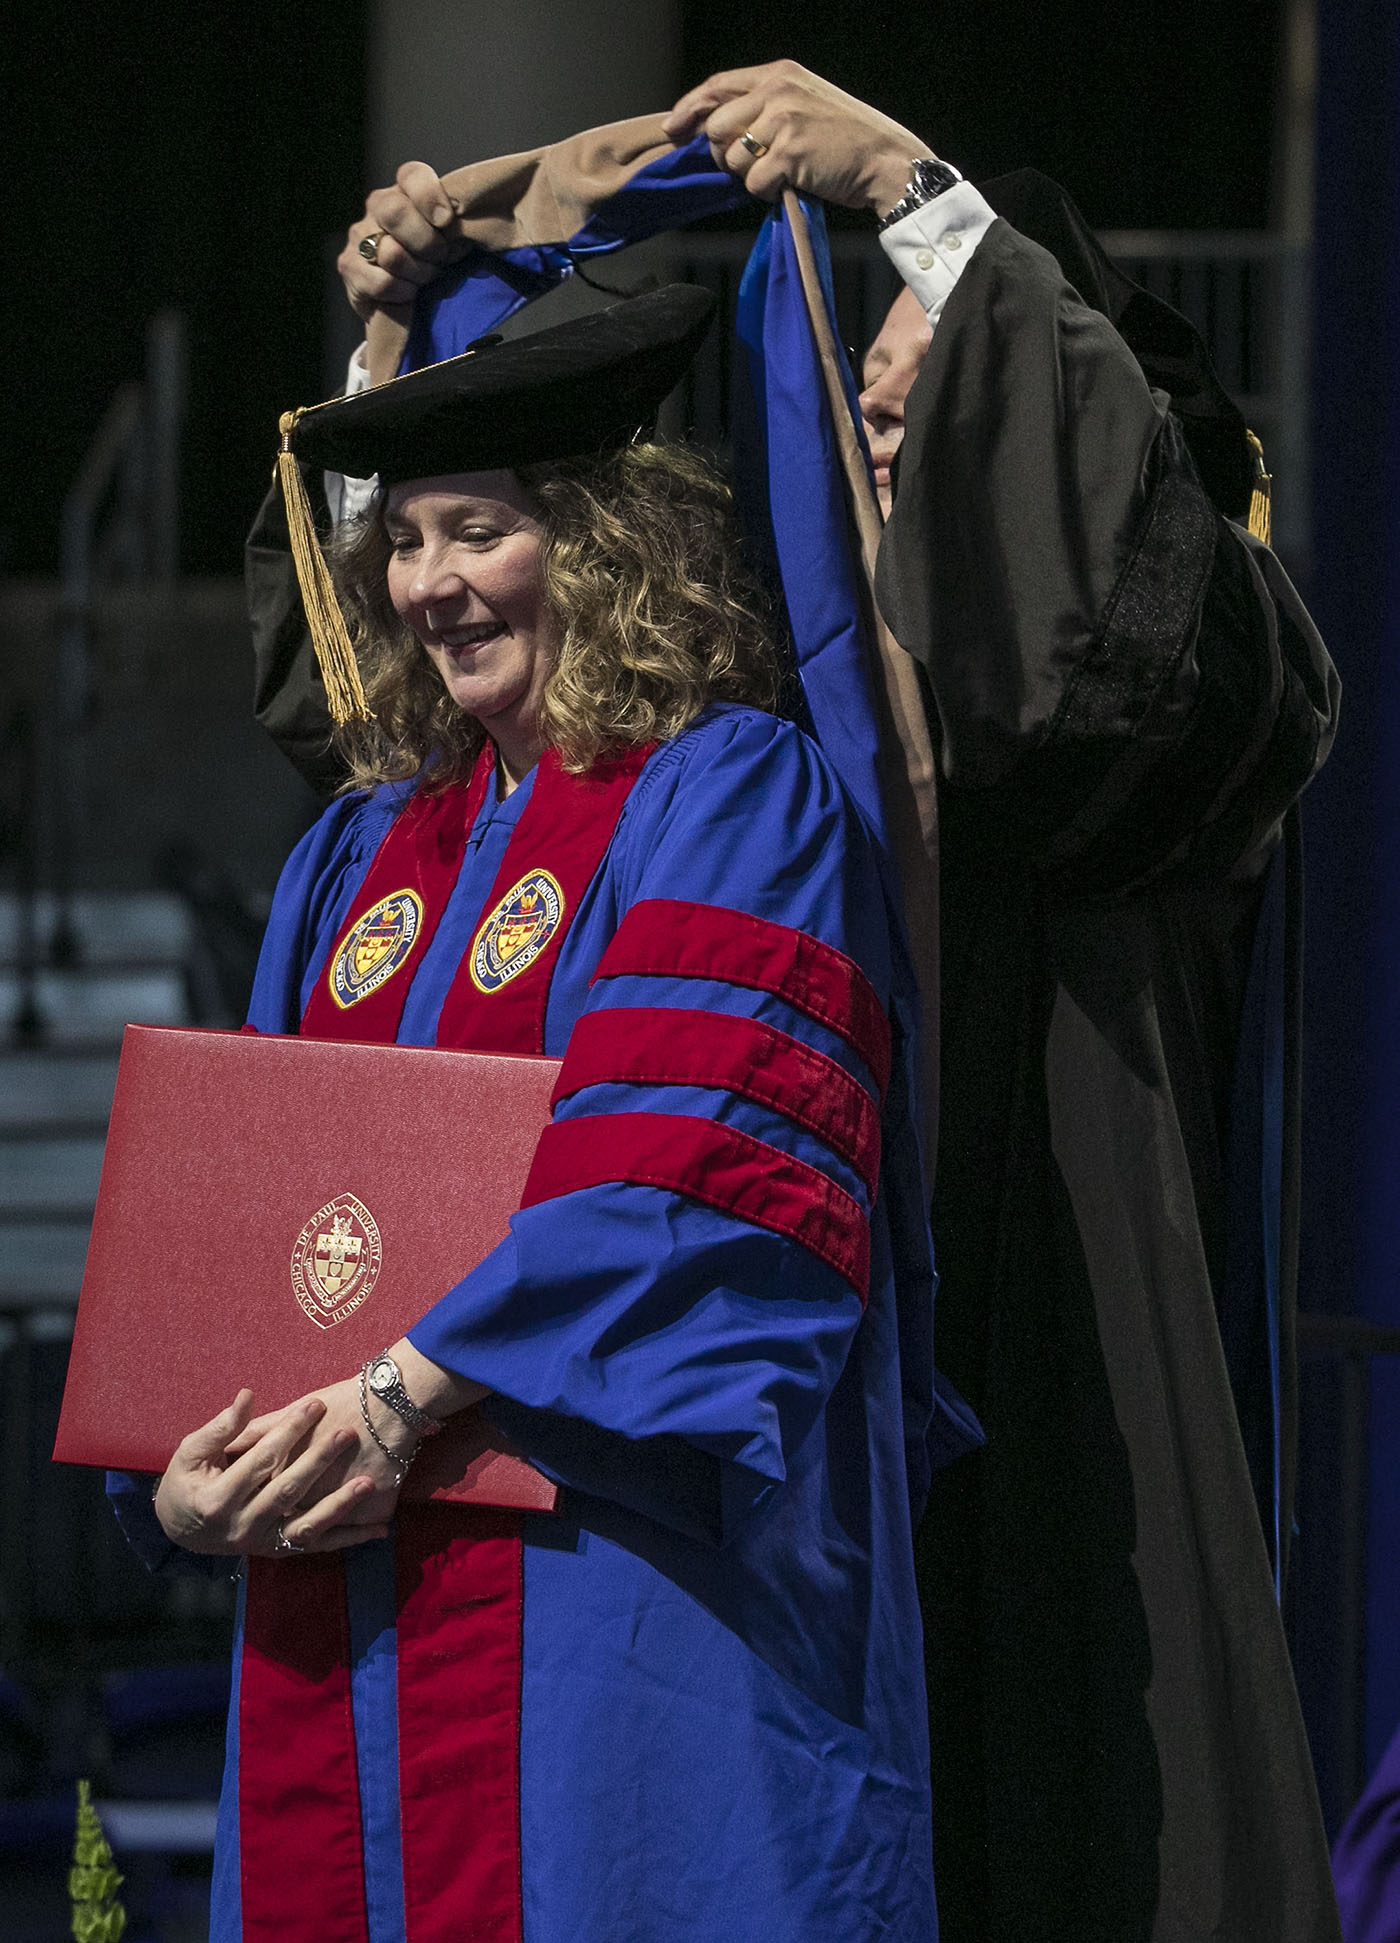 Driehaus College of Business doctoral graduate Tammy Higgins receives her hood during the DePaul University commencement ceremony